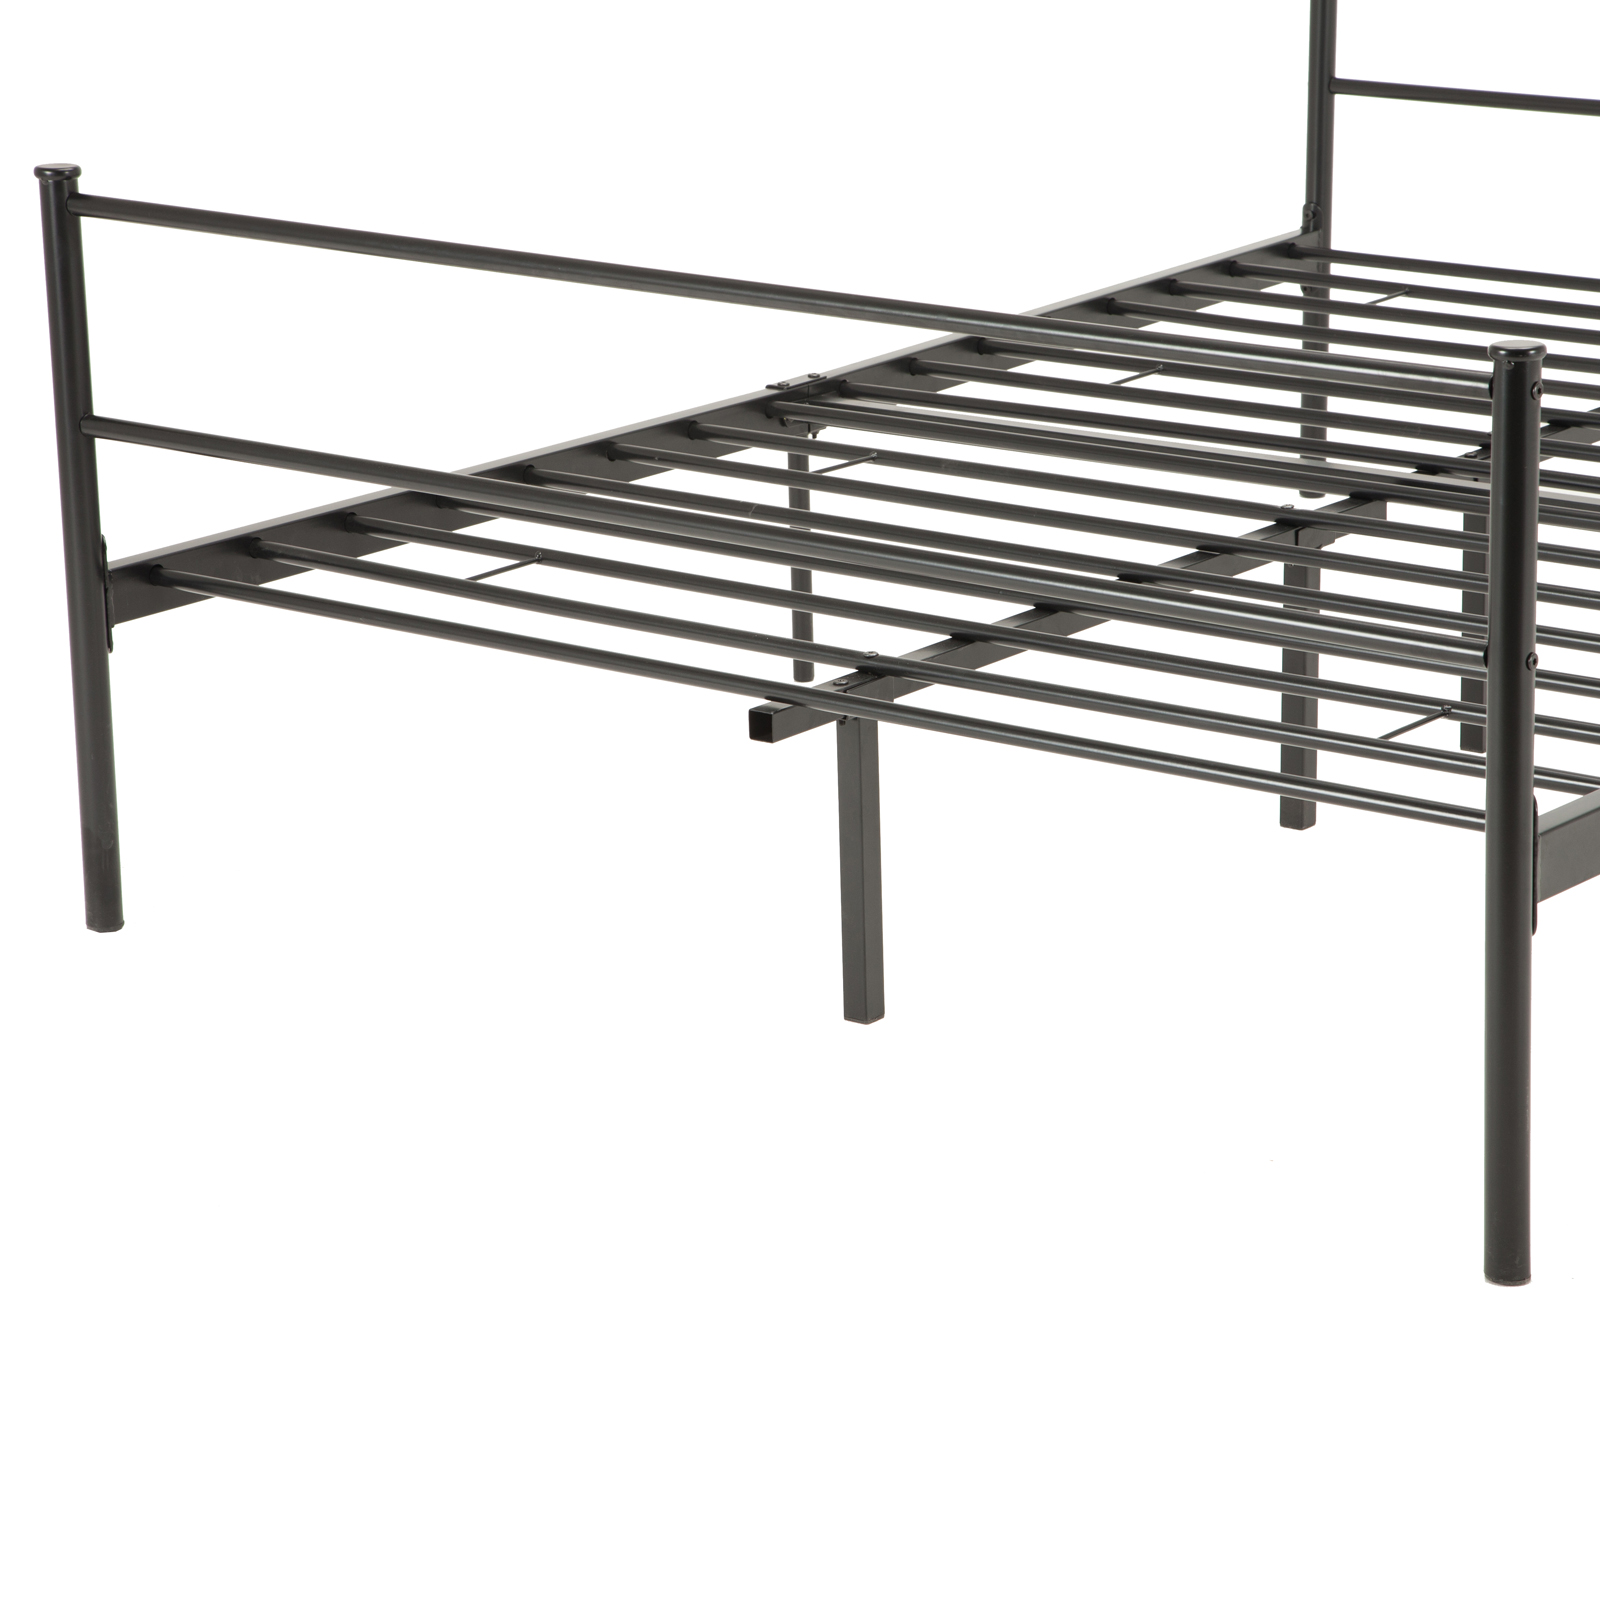 twin full queen size metal bed frame platform - Metal Bed Frame With Headboard